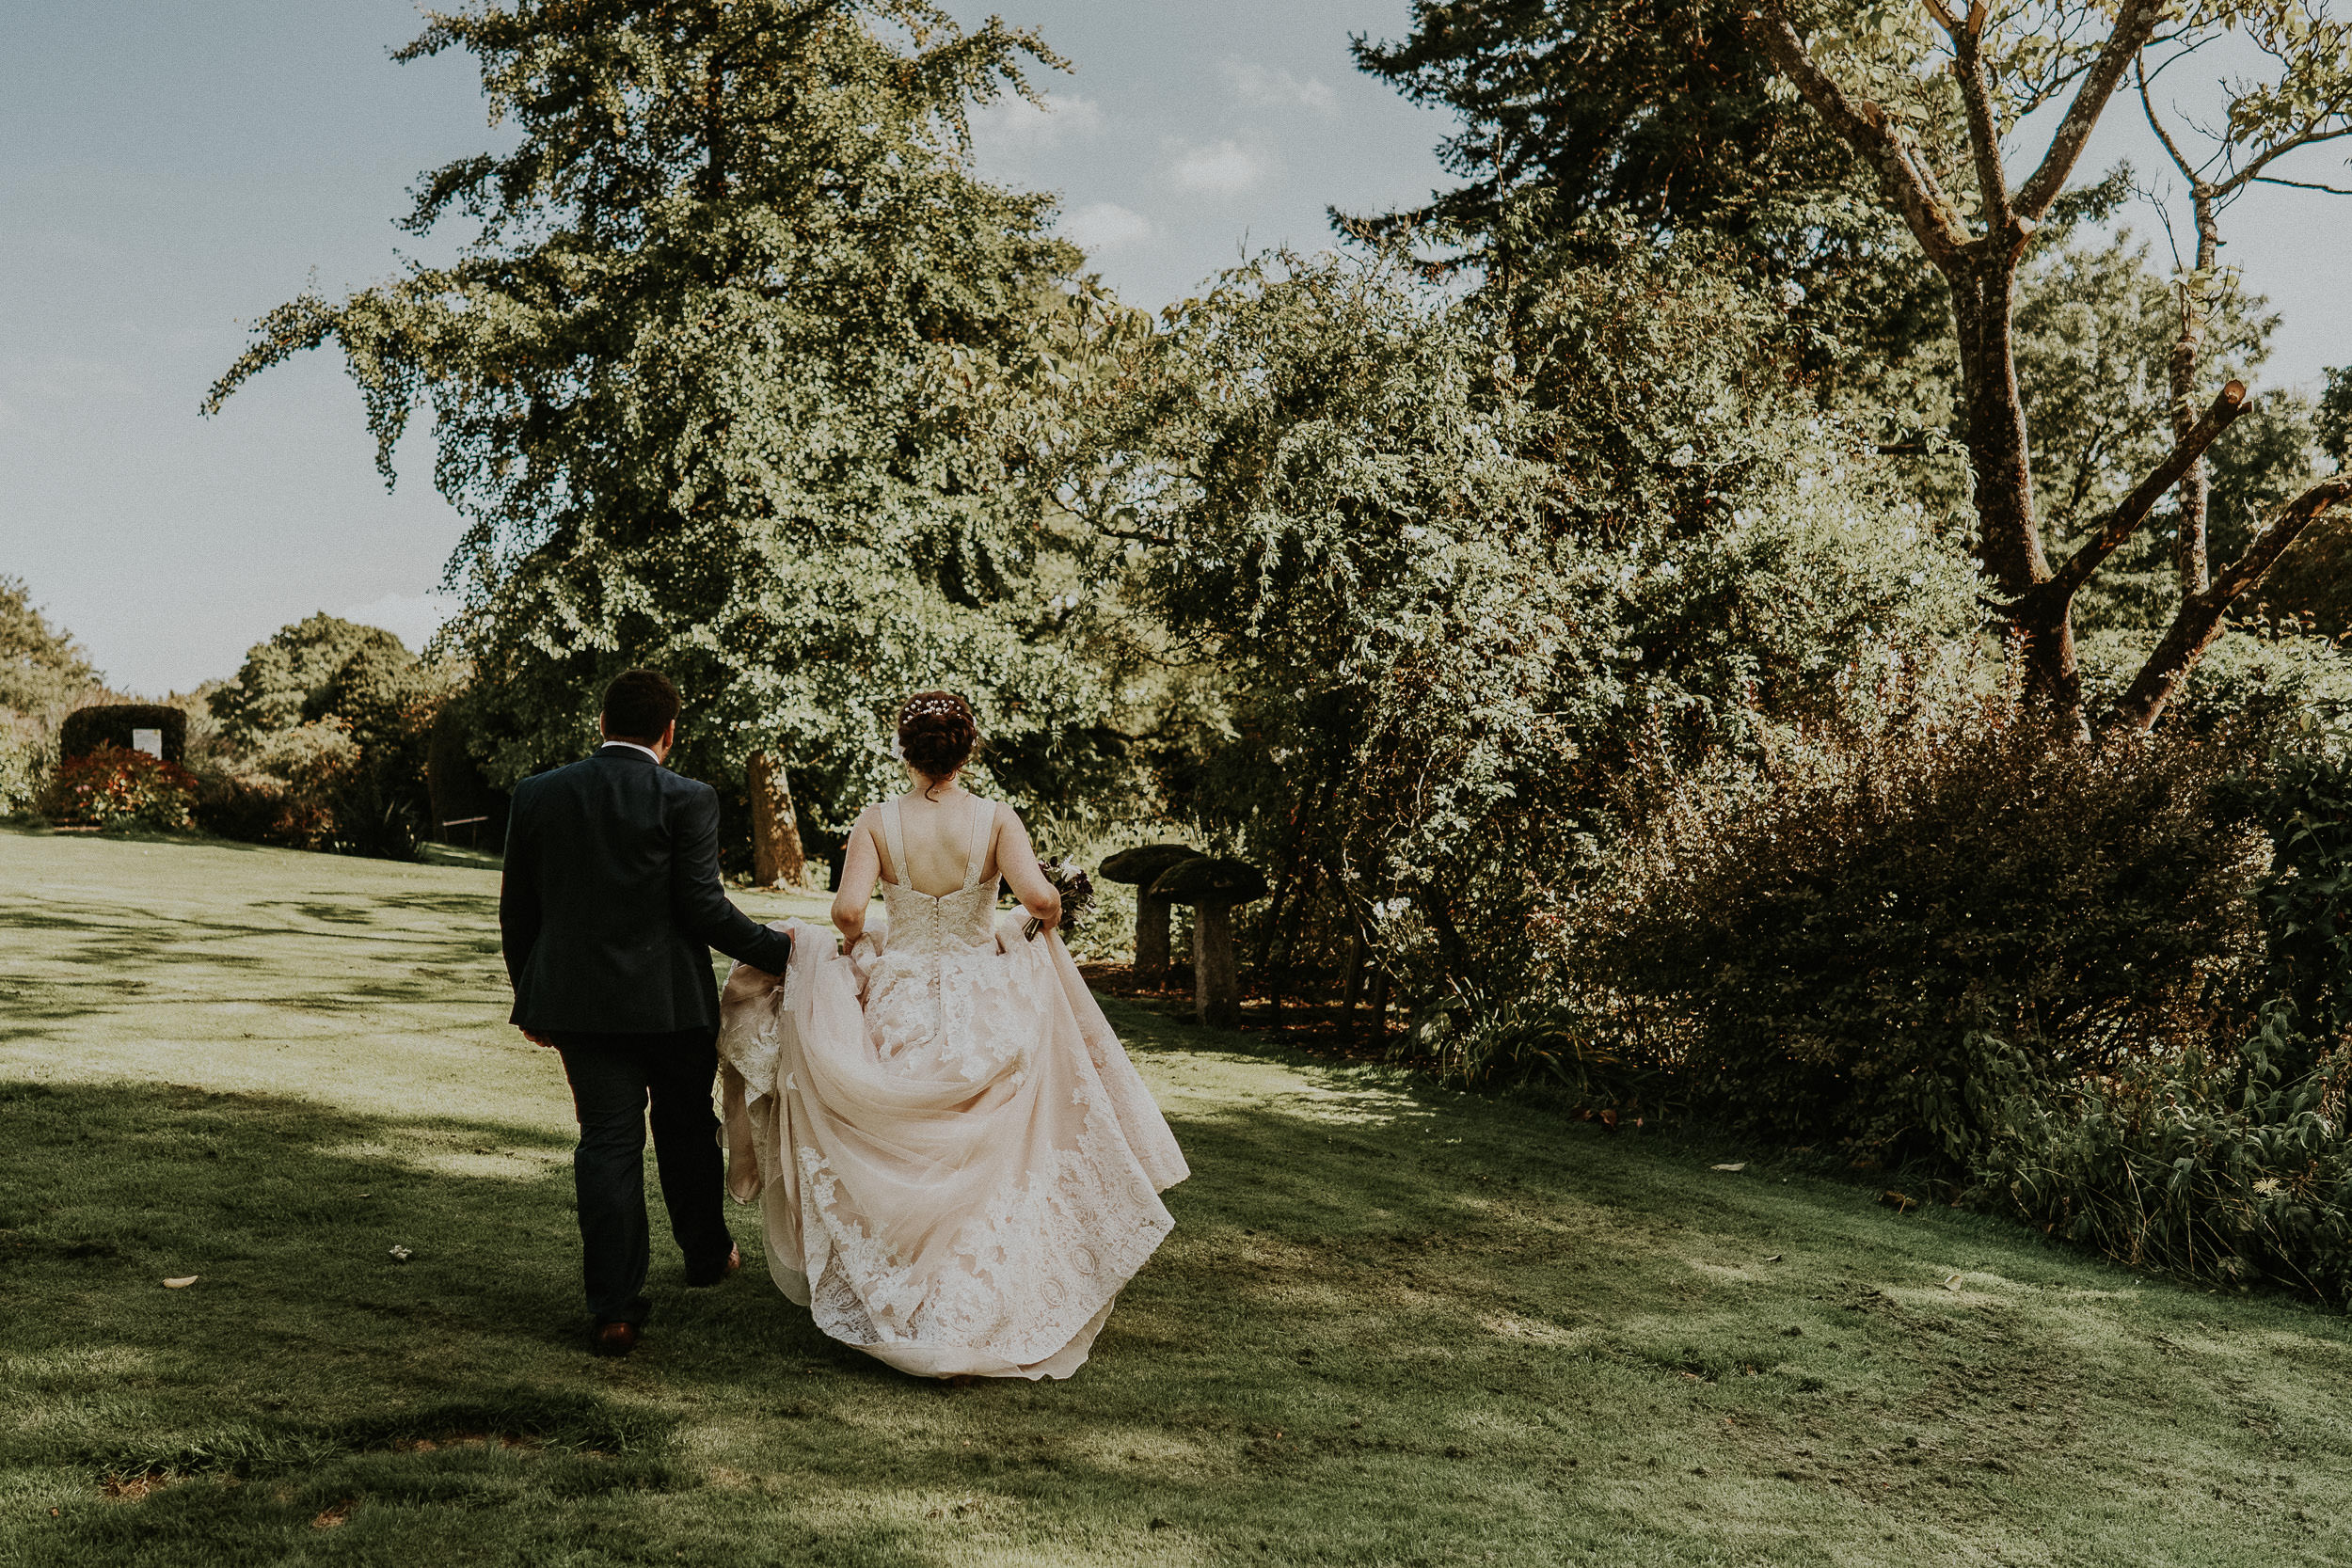 Pennard House Wedding - Bride and Groom